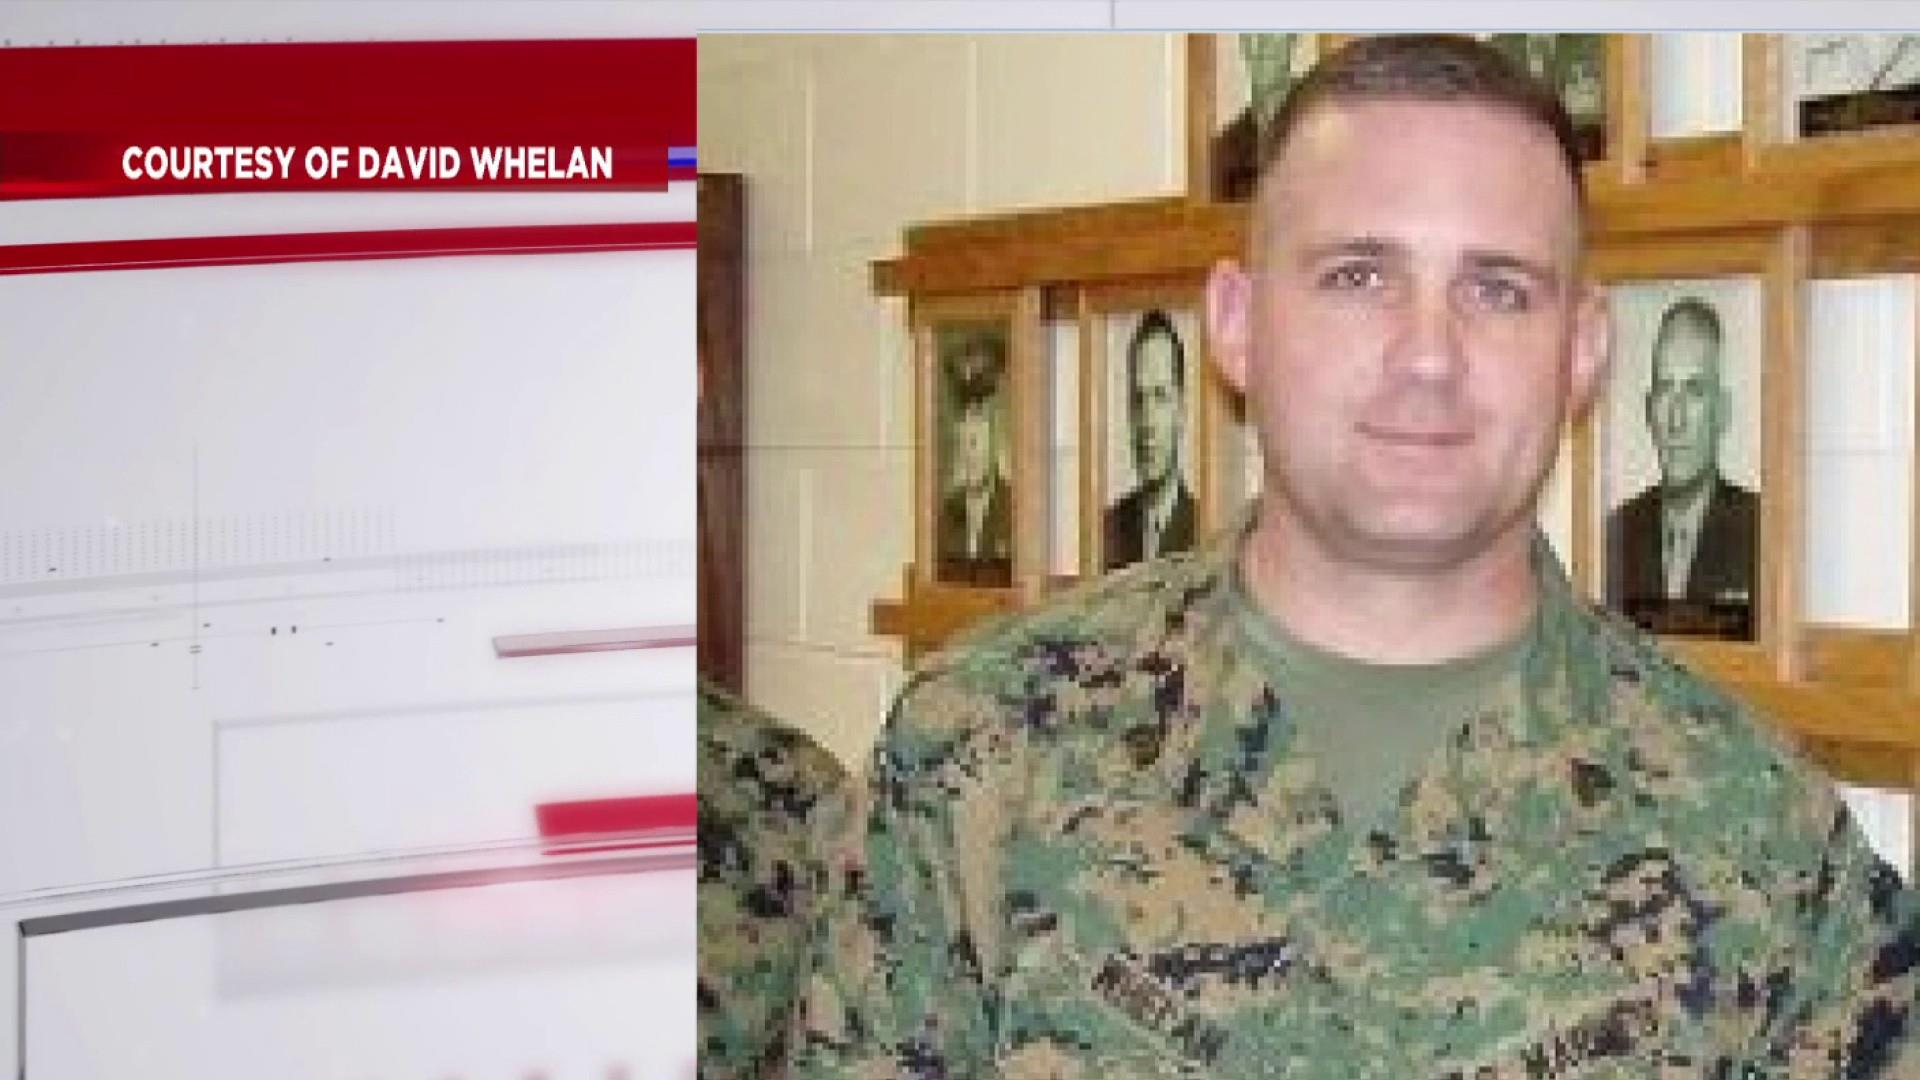 Brother speaks after Paul Whelan detained in Russia on suspicion of spying